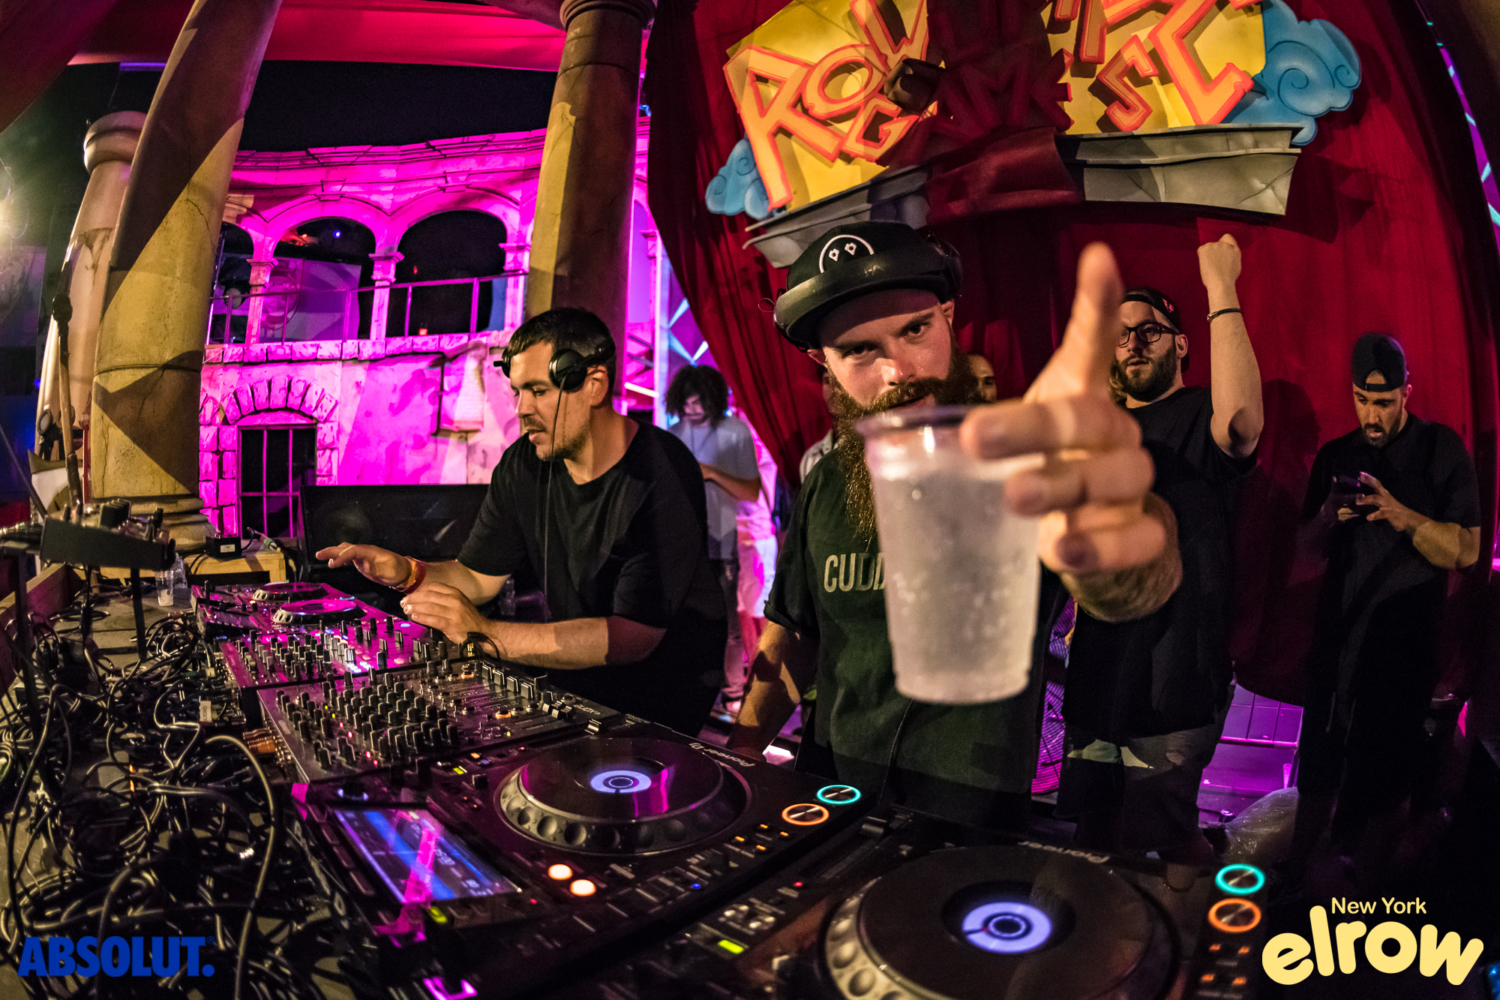 Making magic happen at Elrow Open Air – photos by aLIVE coverageELROW2018 0728 230509 9615 ALIVECOVERAGE